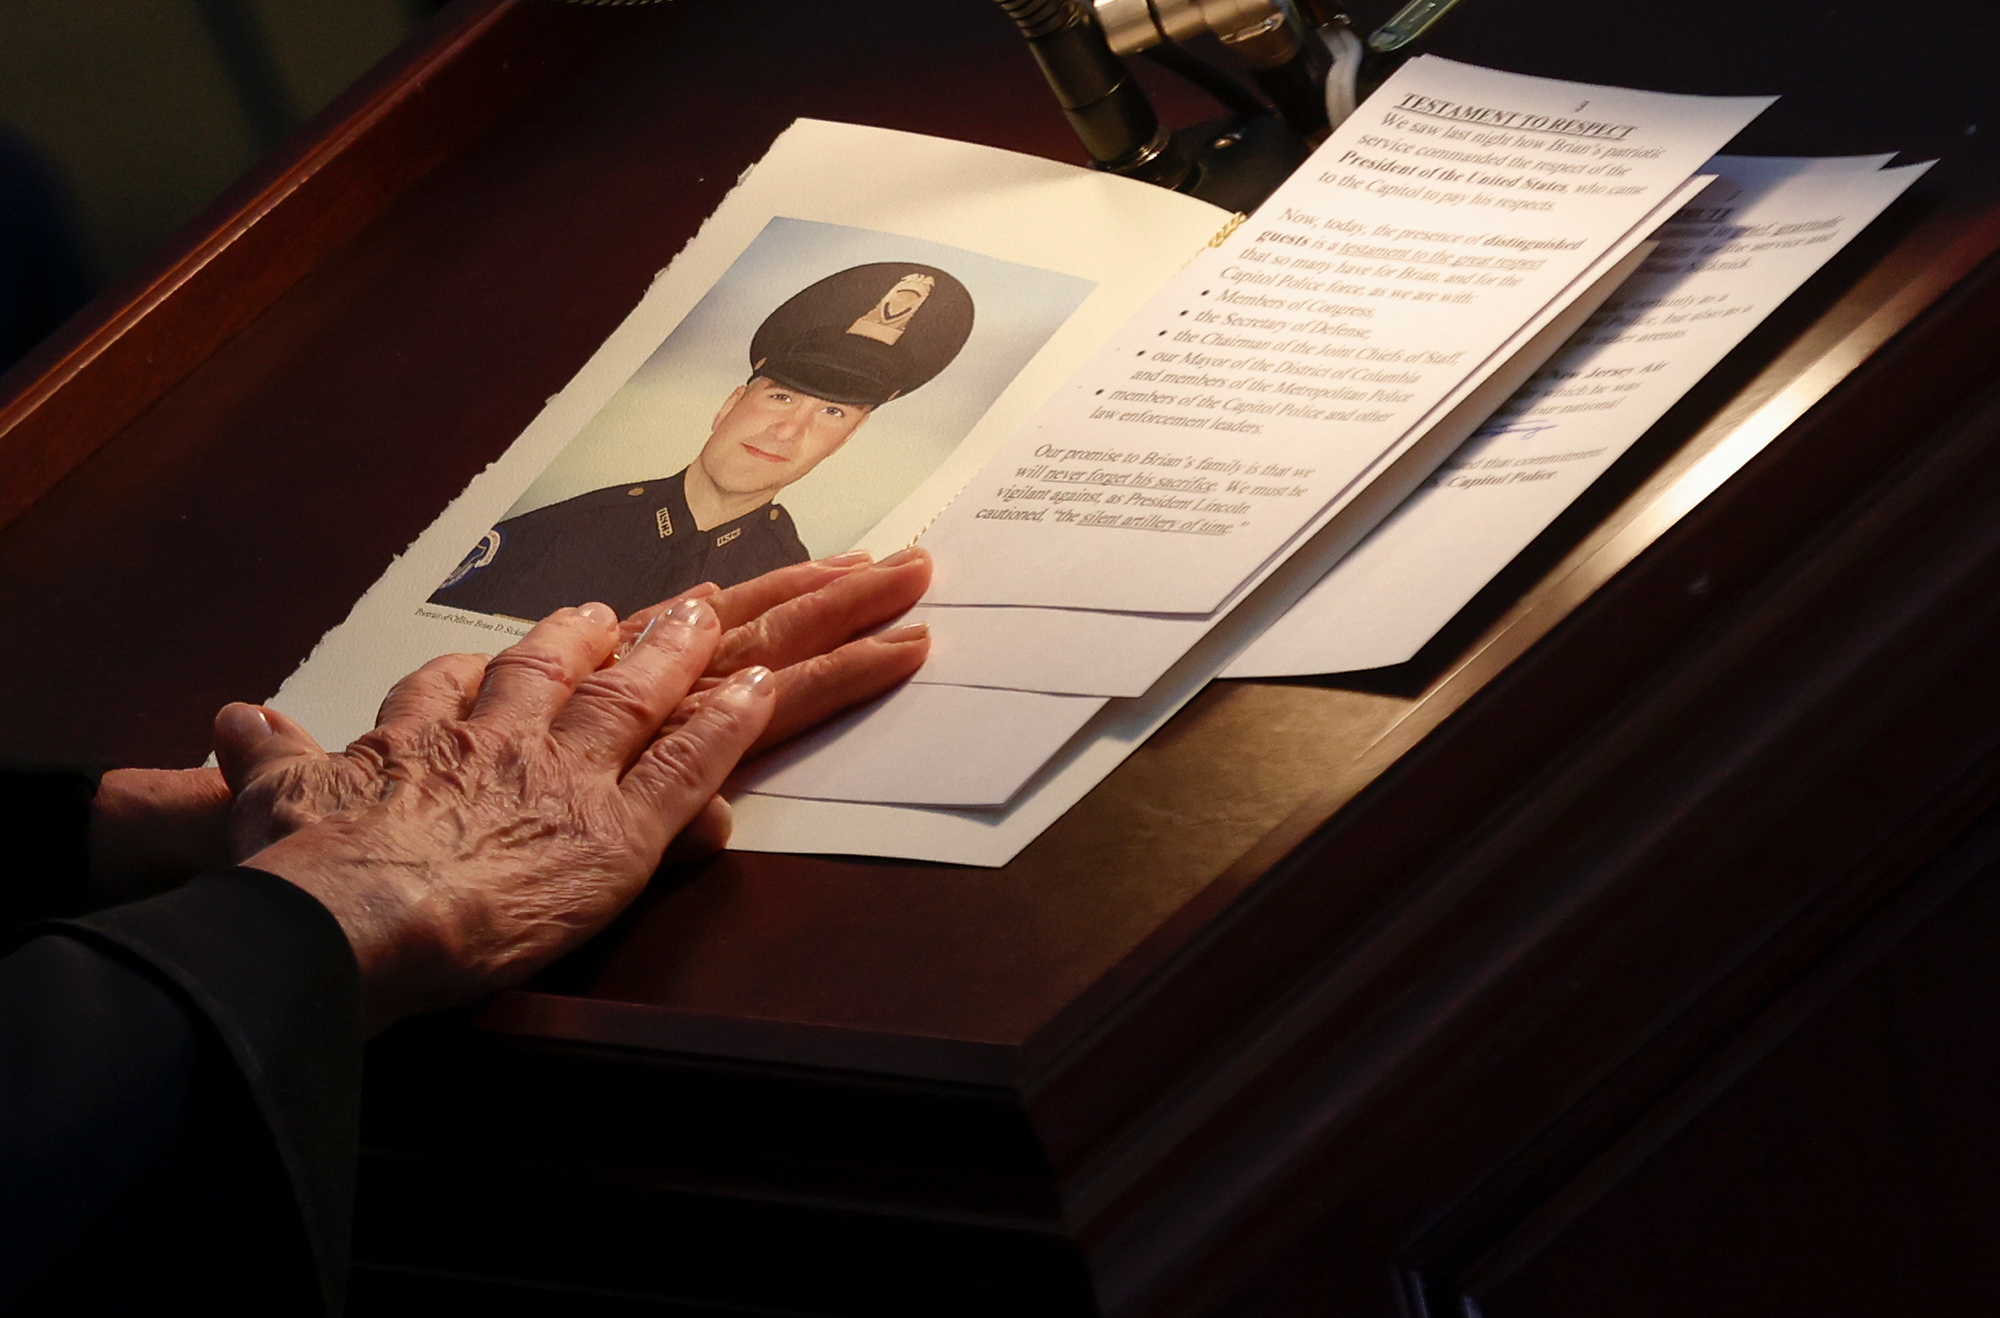 US House of Representatives Speaker Nancy Pelosi holds a portrait of late Capitol Police officer Brian Sicknick as he lies in honor during a ceremony as people pay their respects in the Rotunda of the US Capitol building on February 3, 2021, in Washington, DC.